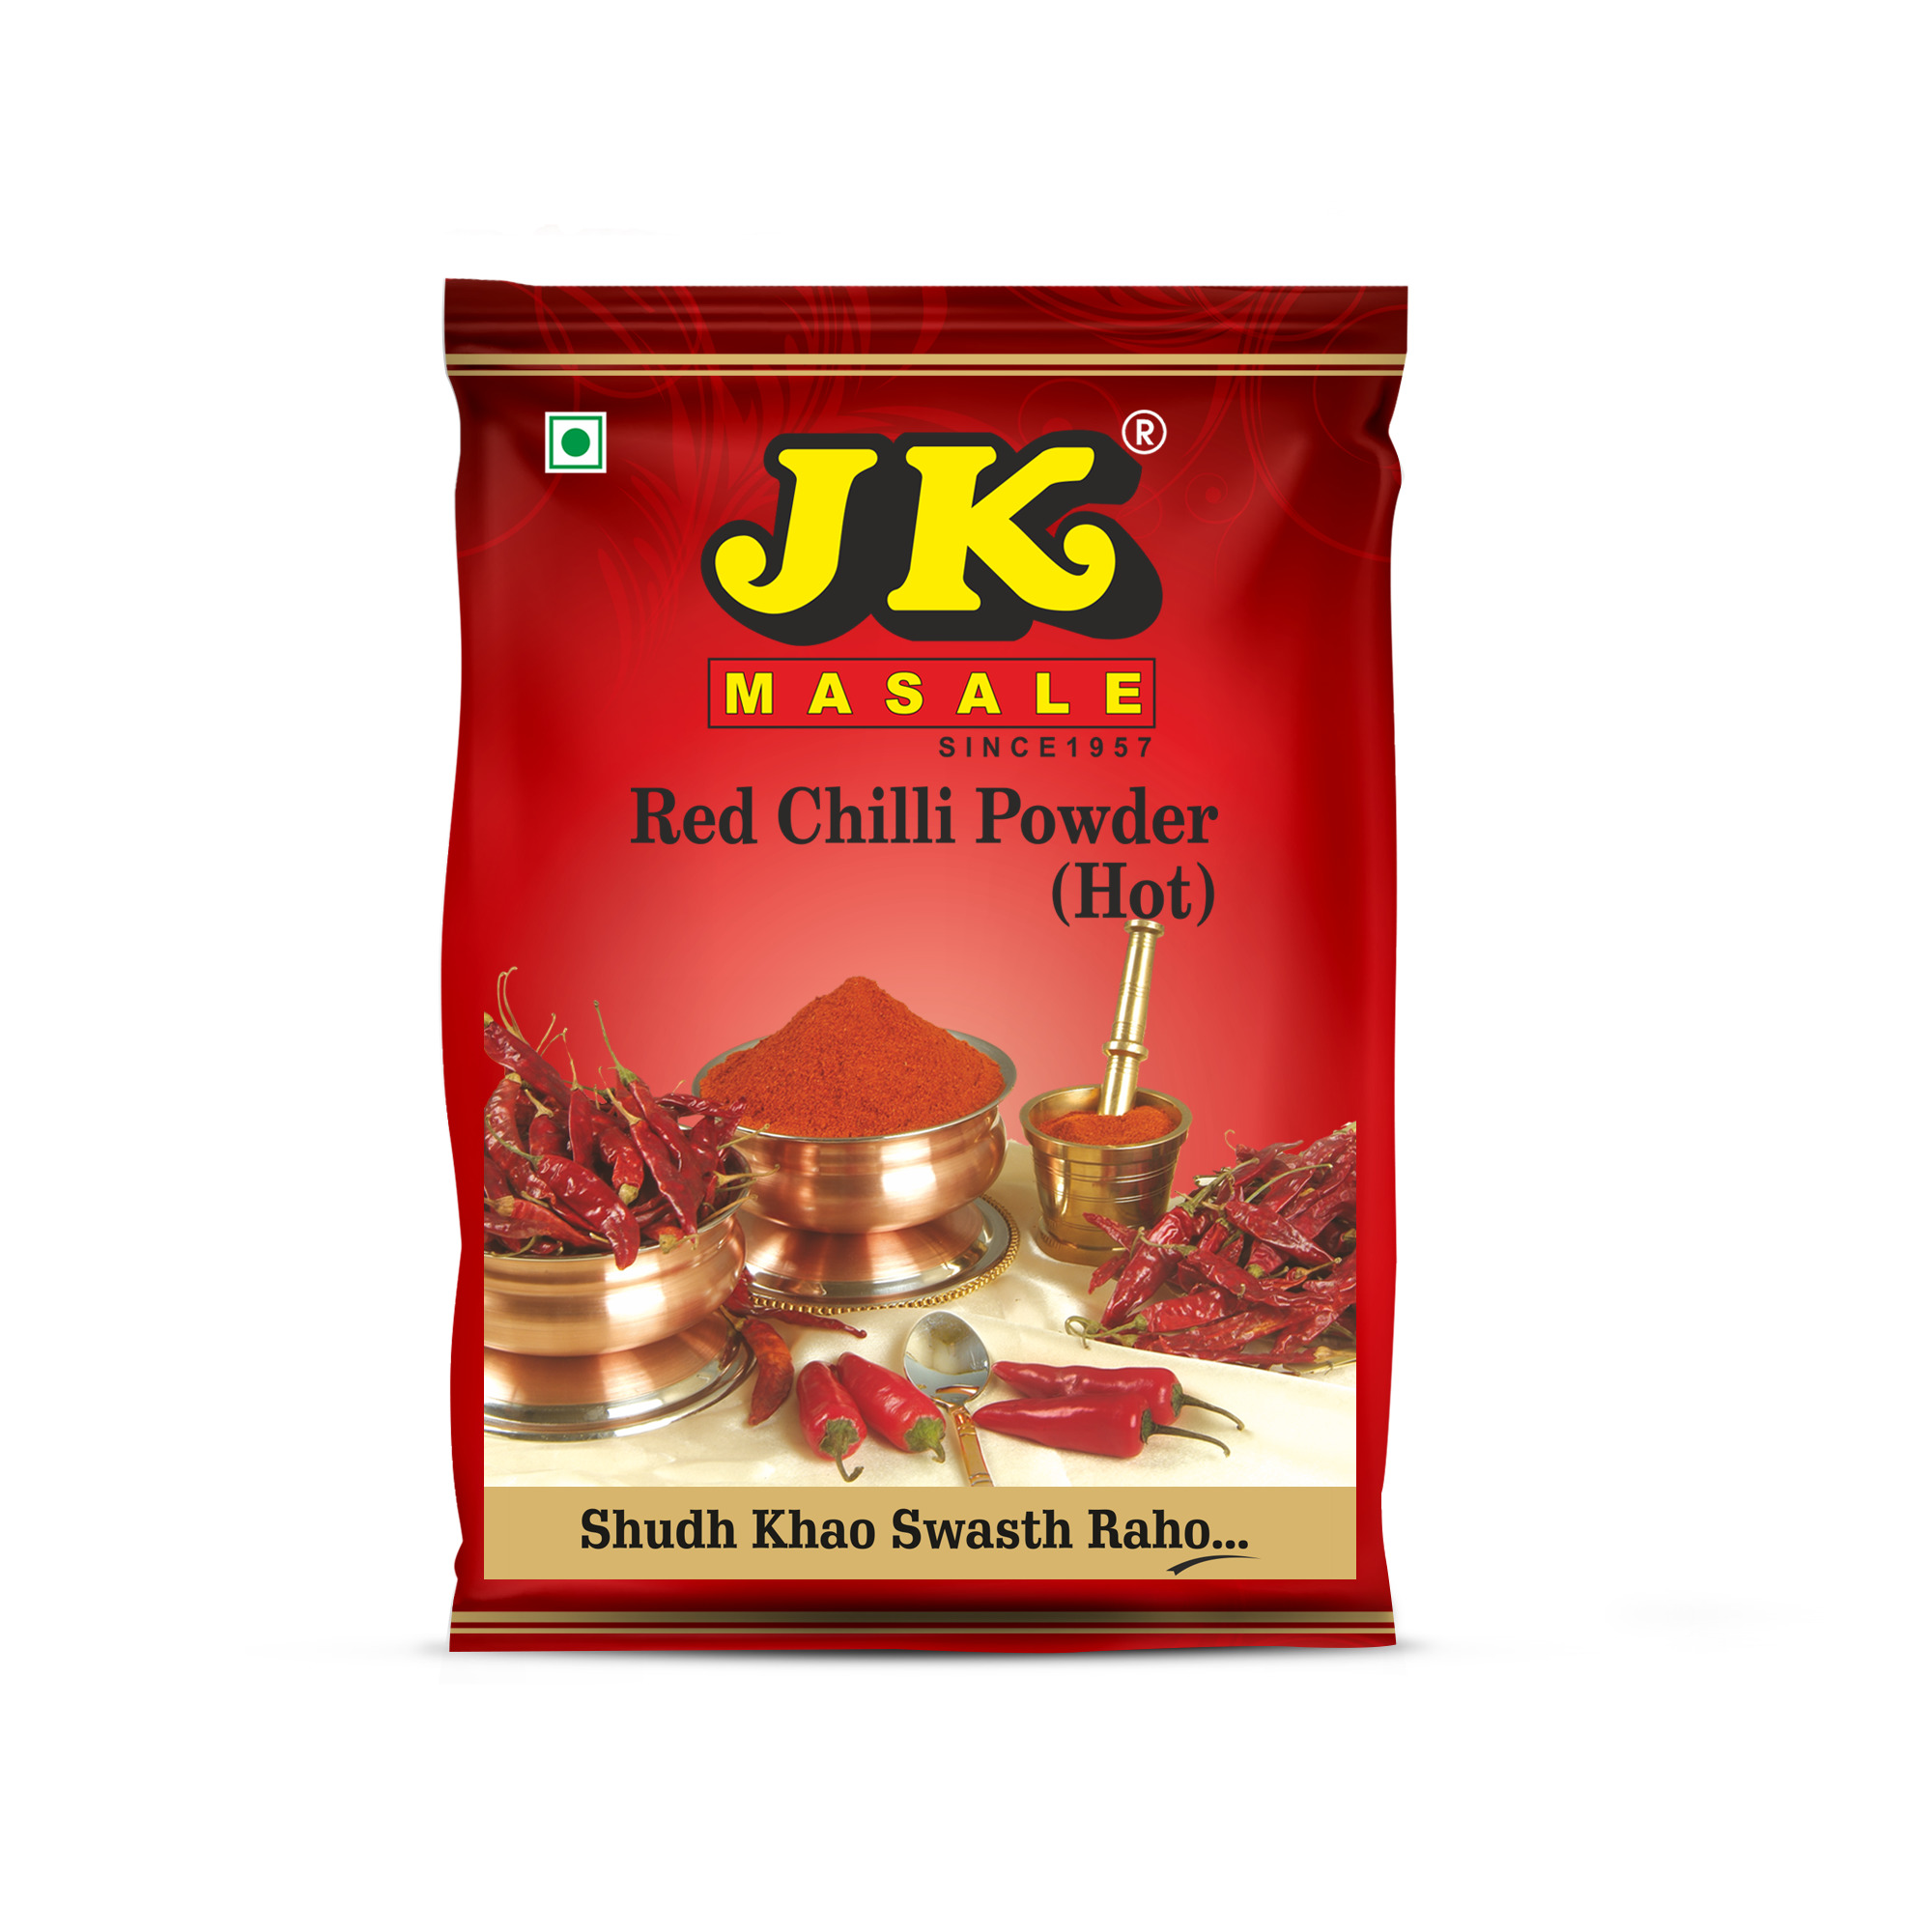 JK RED CHILI POWDER